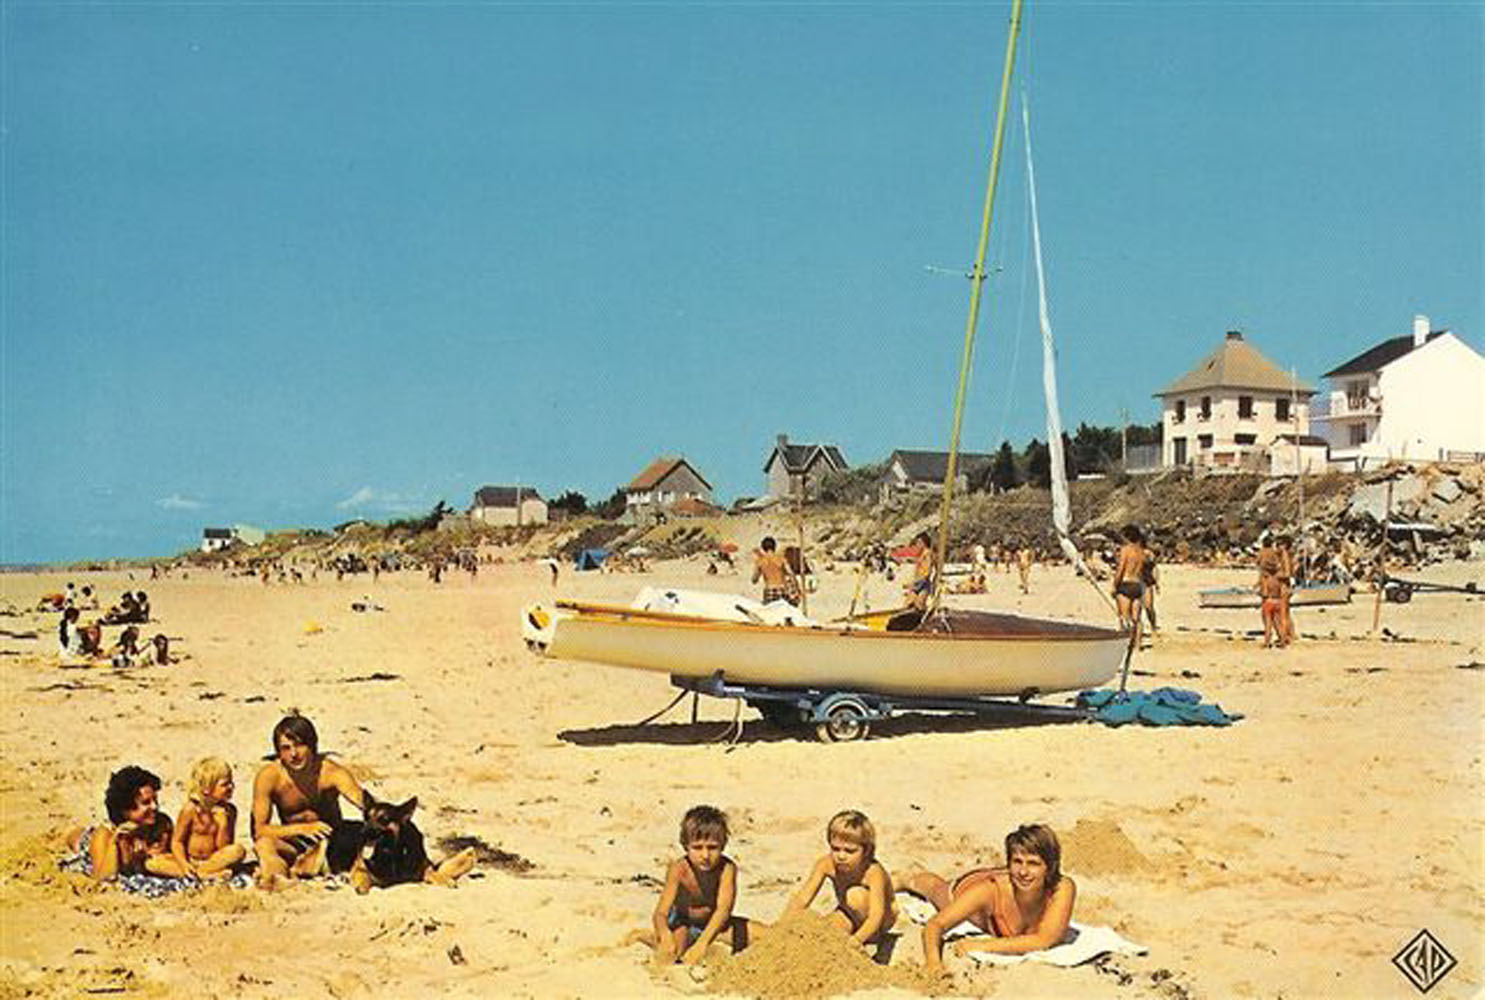 1970 St Martin Plage 2 © collection Michel Soulima